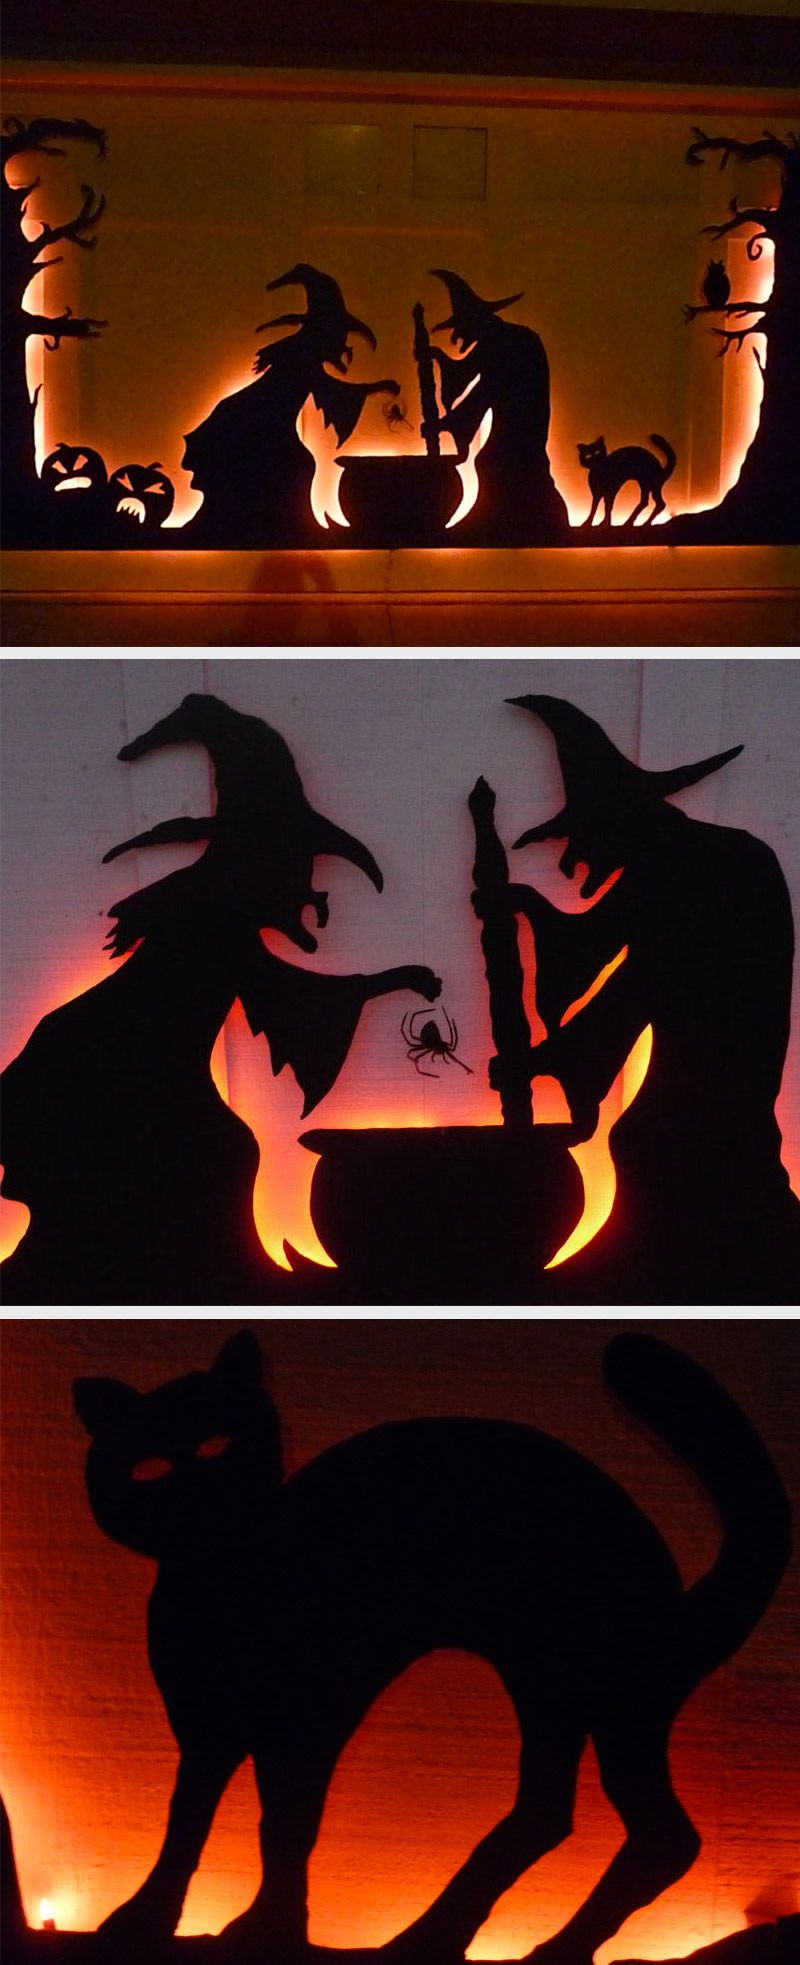 Halloween garage door decorations - Halloween Garage Door Silhouette